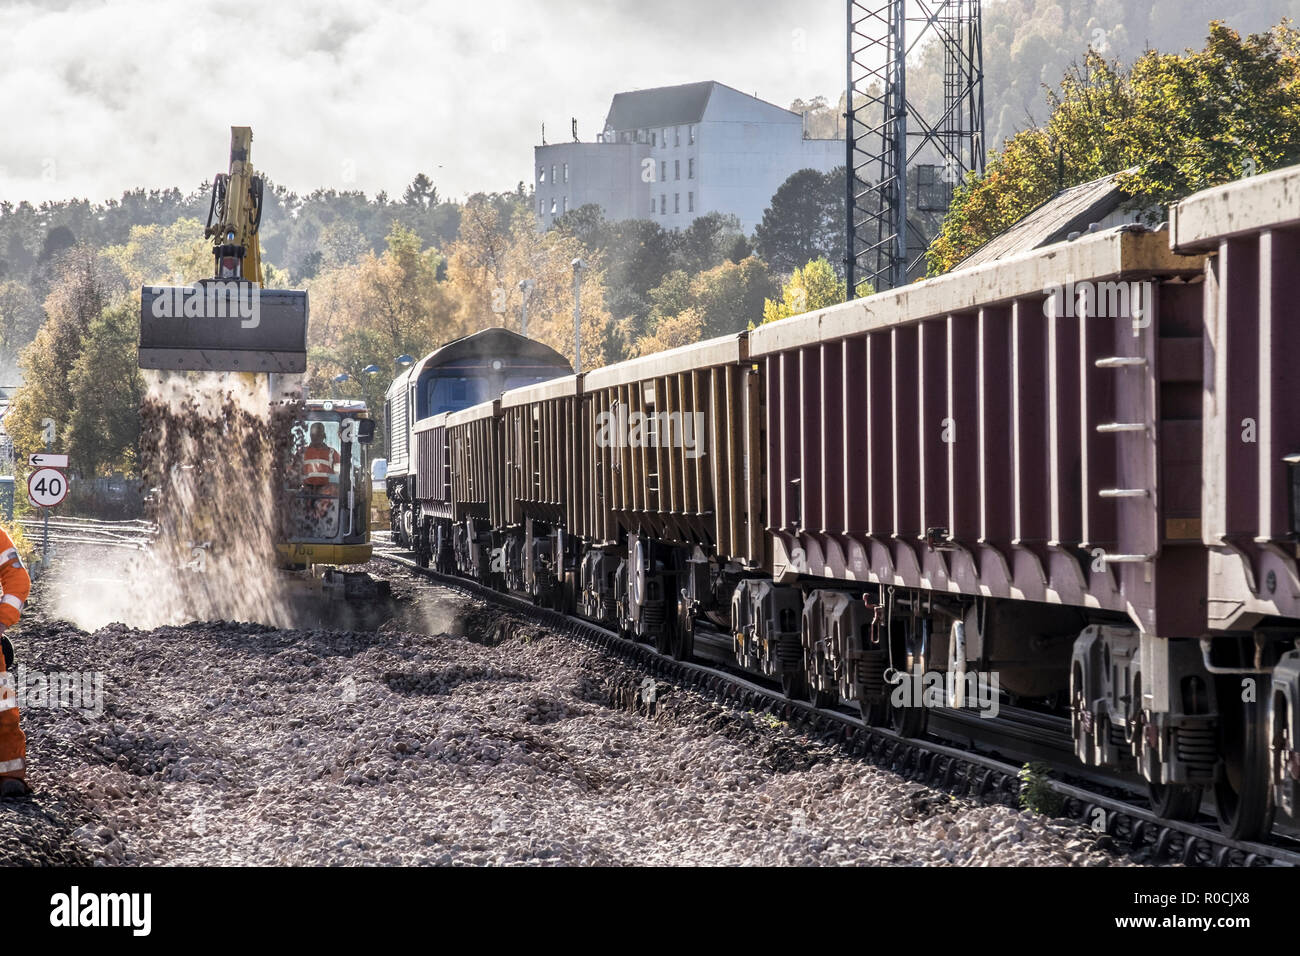 New rail tracks and ballast being laid - Stock Image